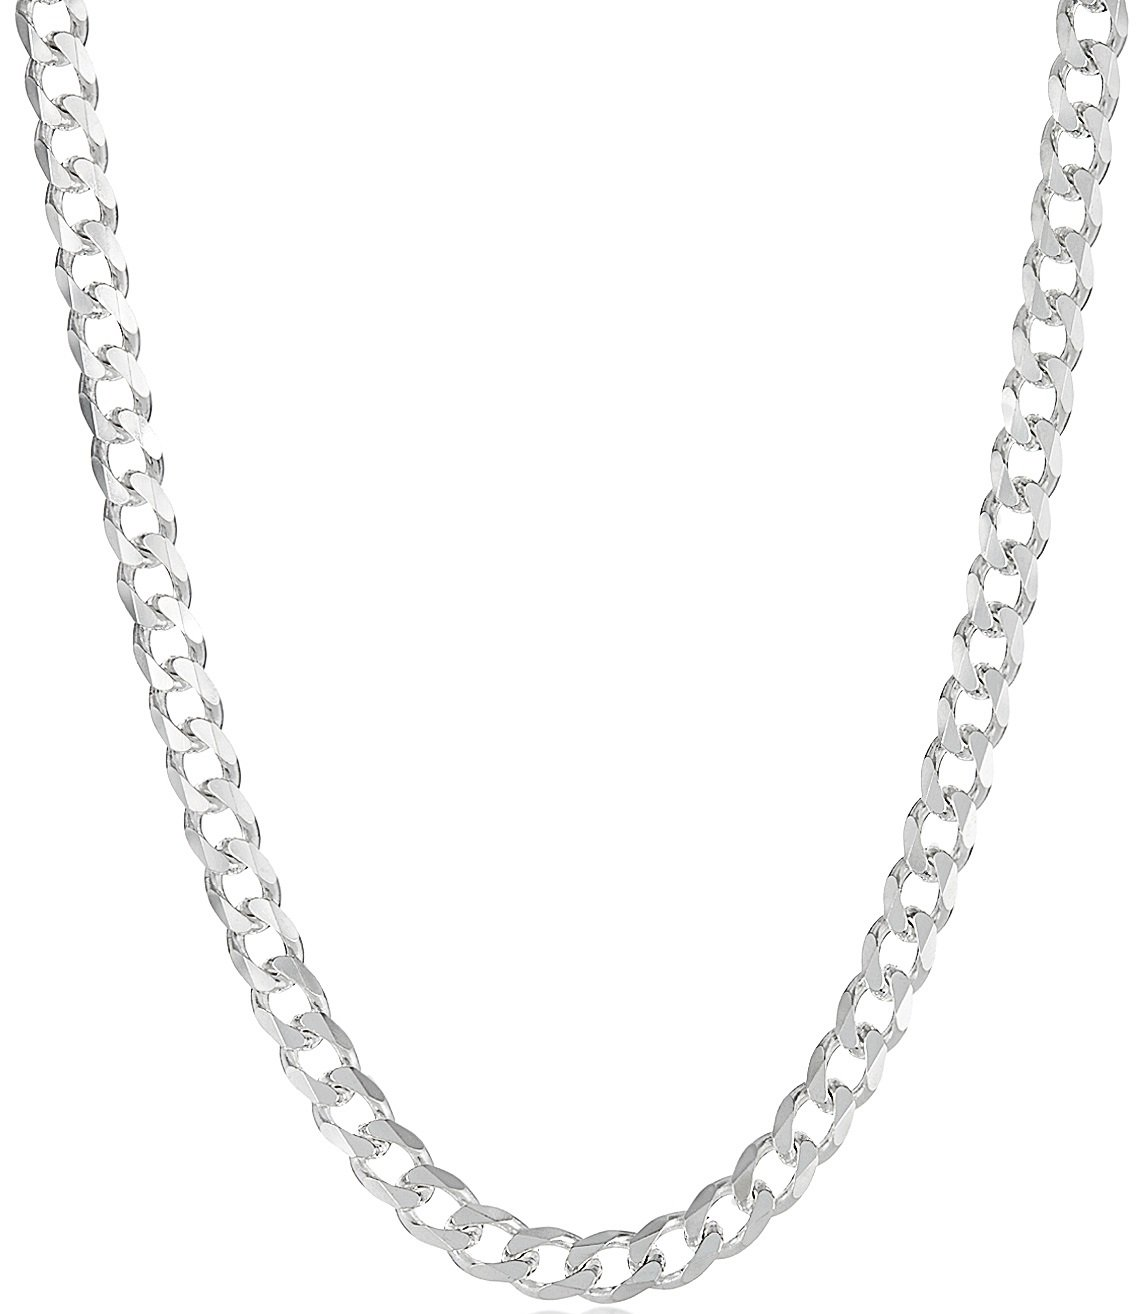 925 Sterling Silver Italian Crafted 8mm Beveled Cuban Link Chain Necklace, 18'' + Bonus Polishing Cloth